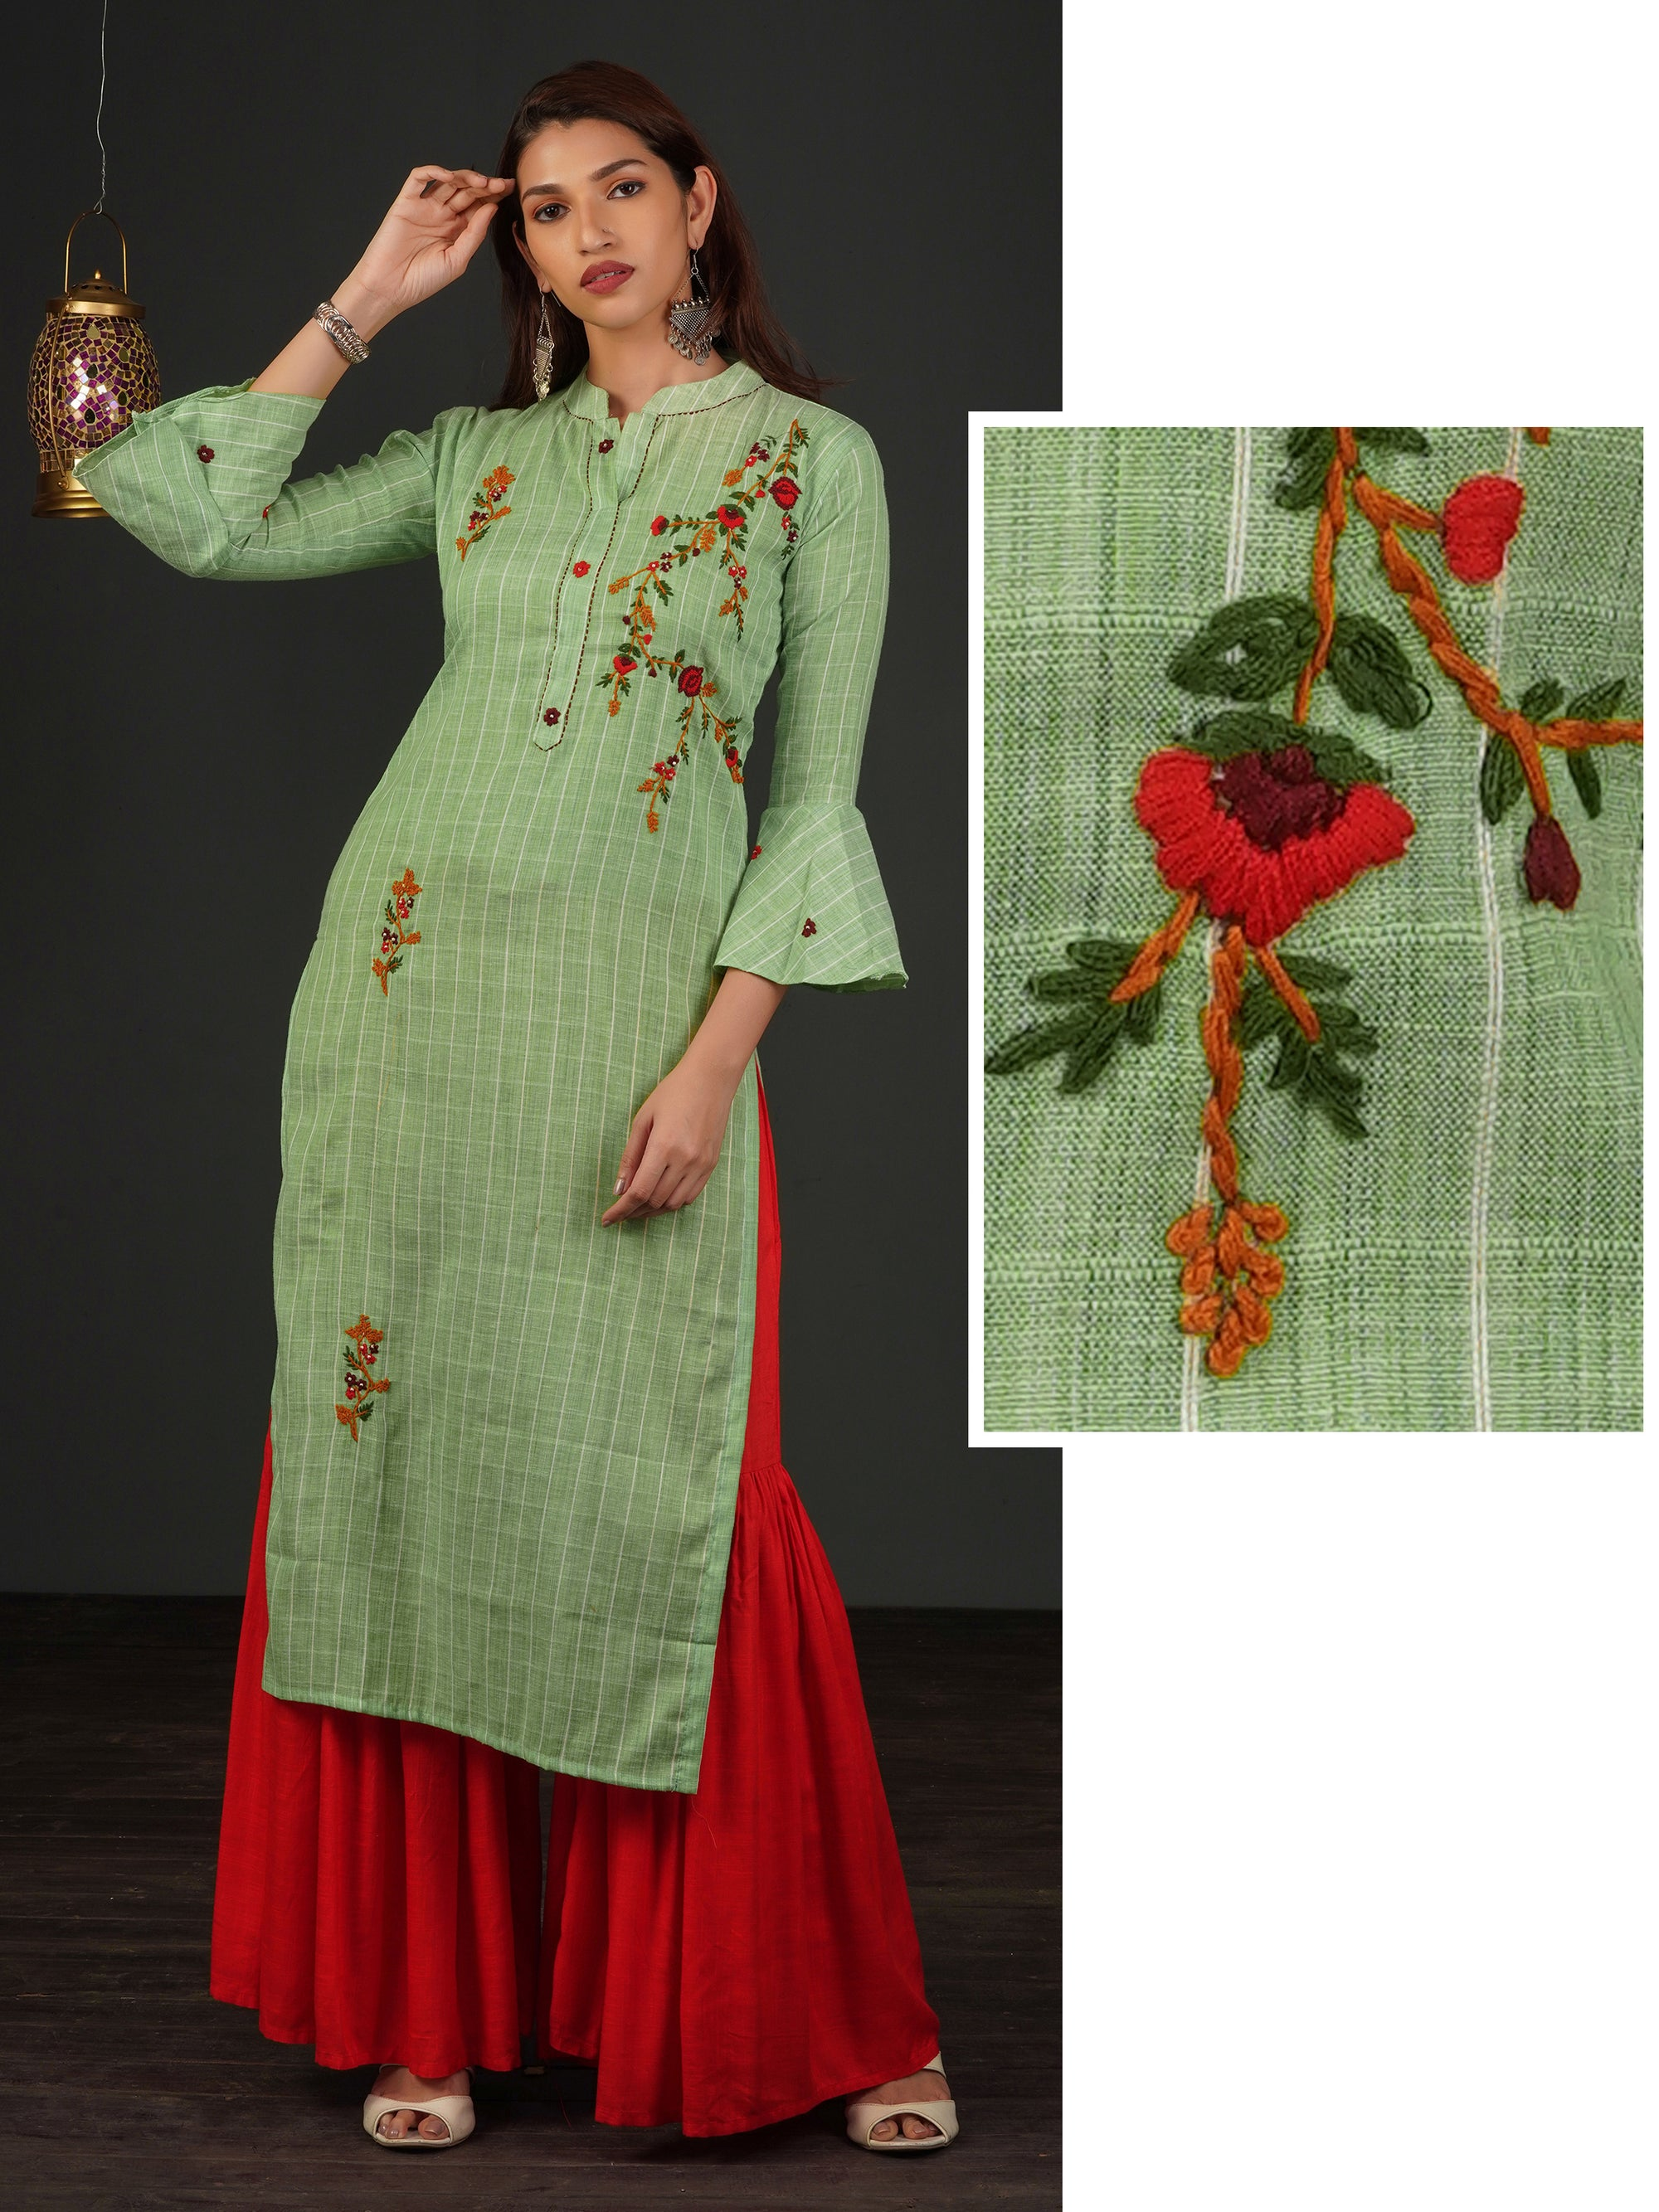 Elegant French Knot & Floral Embroidered Kurti